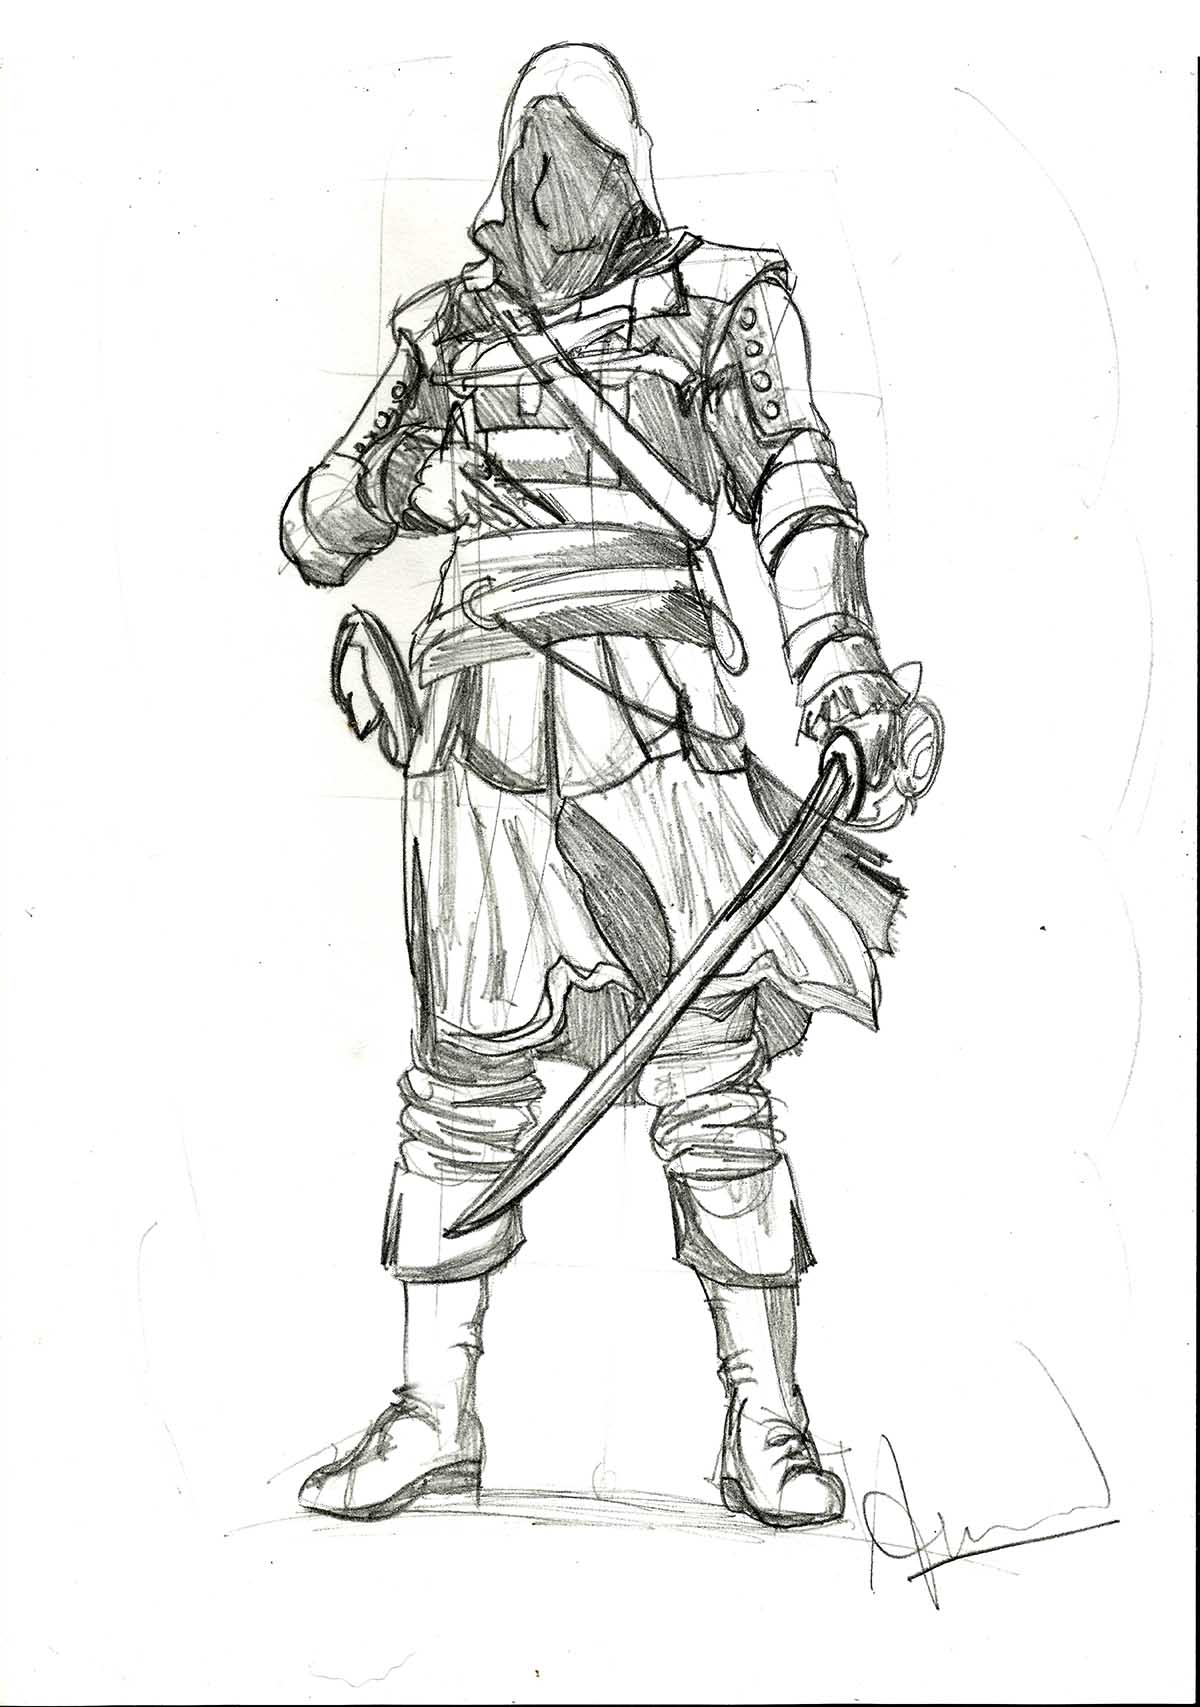 Assassins Creed 4: Edward Kenway Sketch by aniket210696 on ...